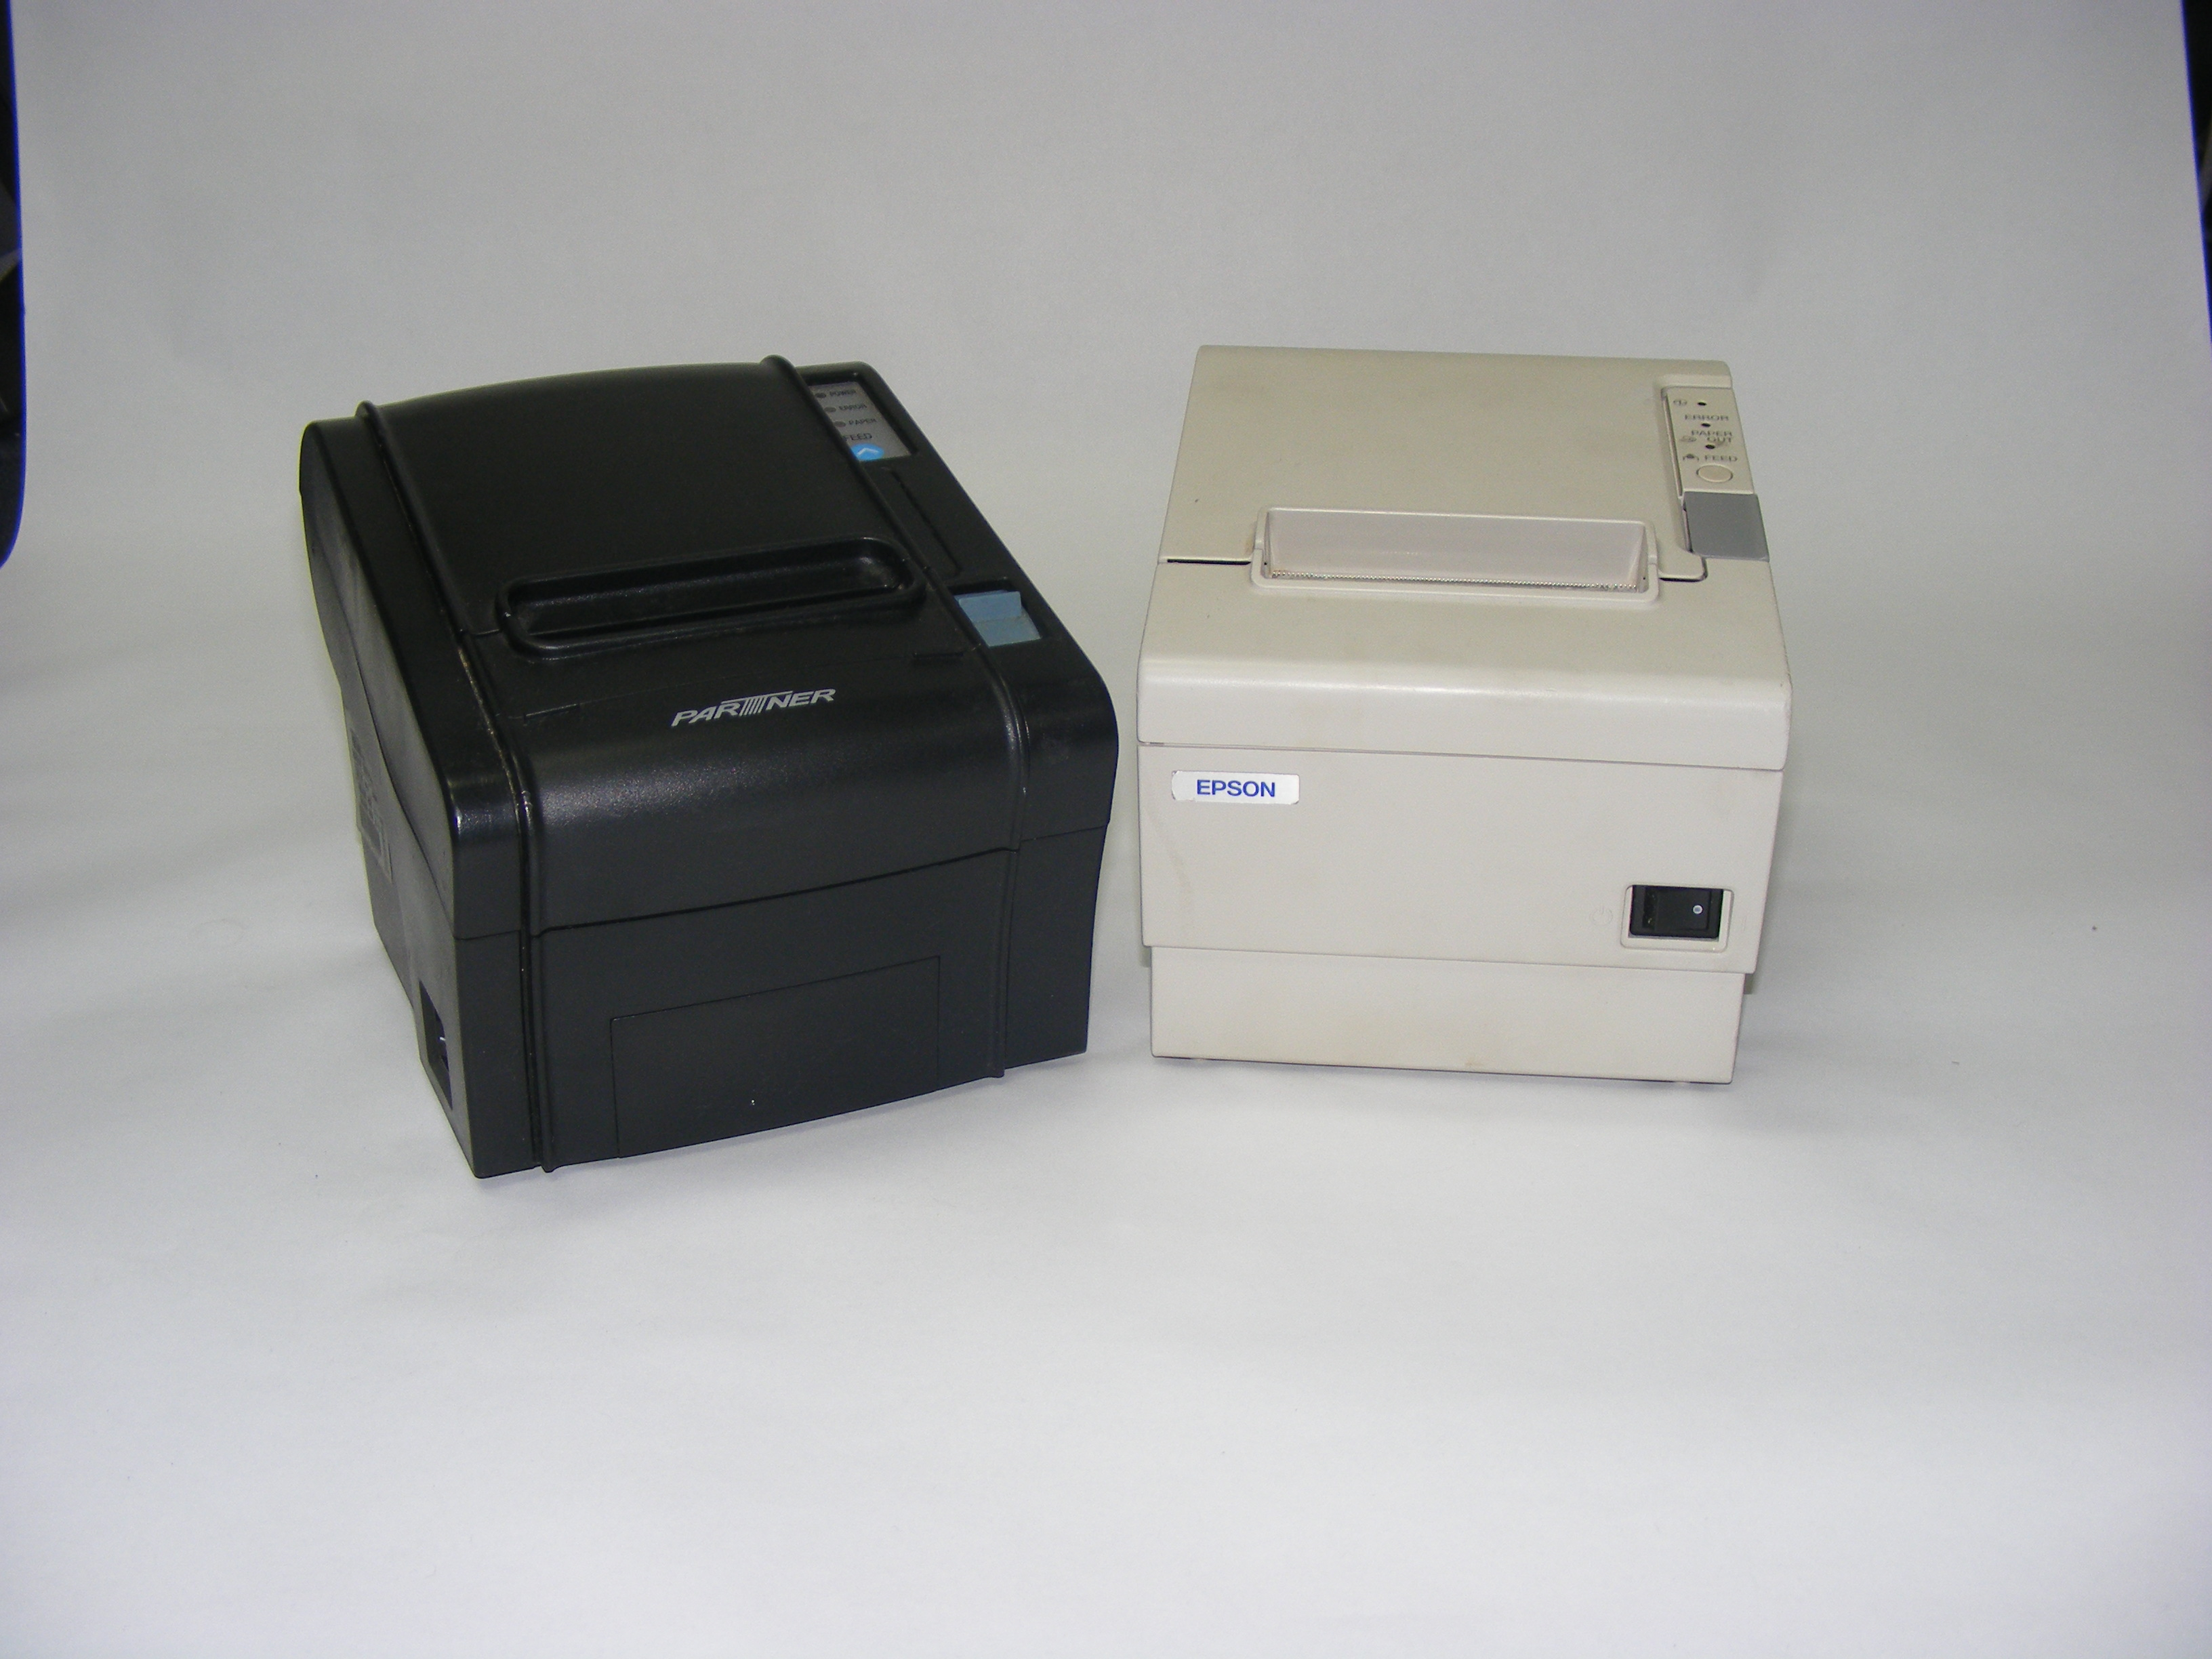 Thermal Receipt Kitchen And Other Printers 1 Stop Epos Till Honeywell Smart Vfd Compact Refurbished Standard 80mm Printer